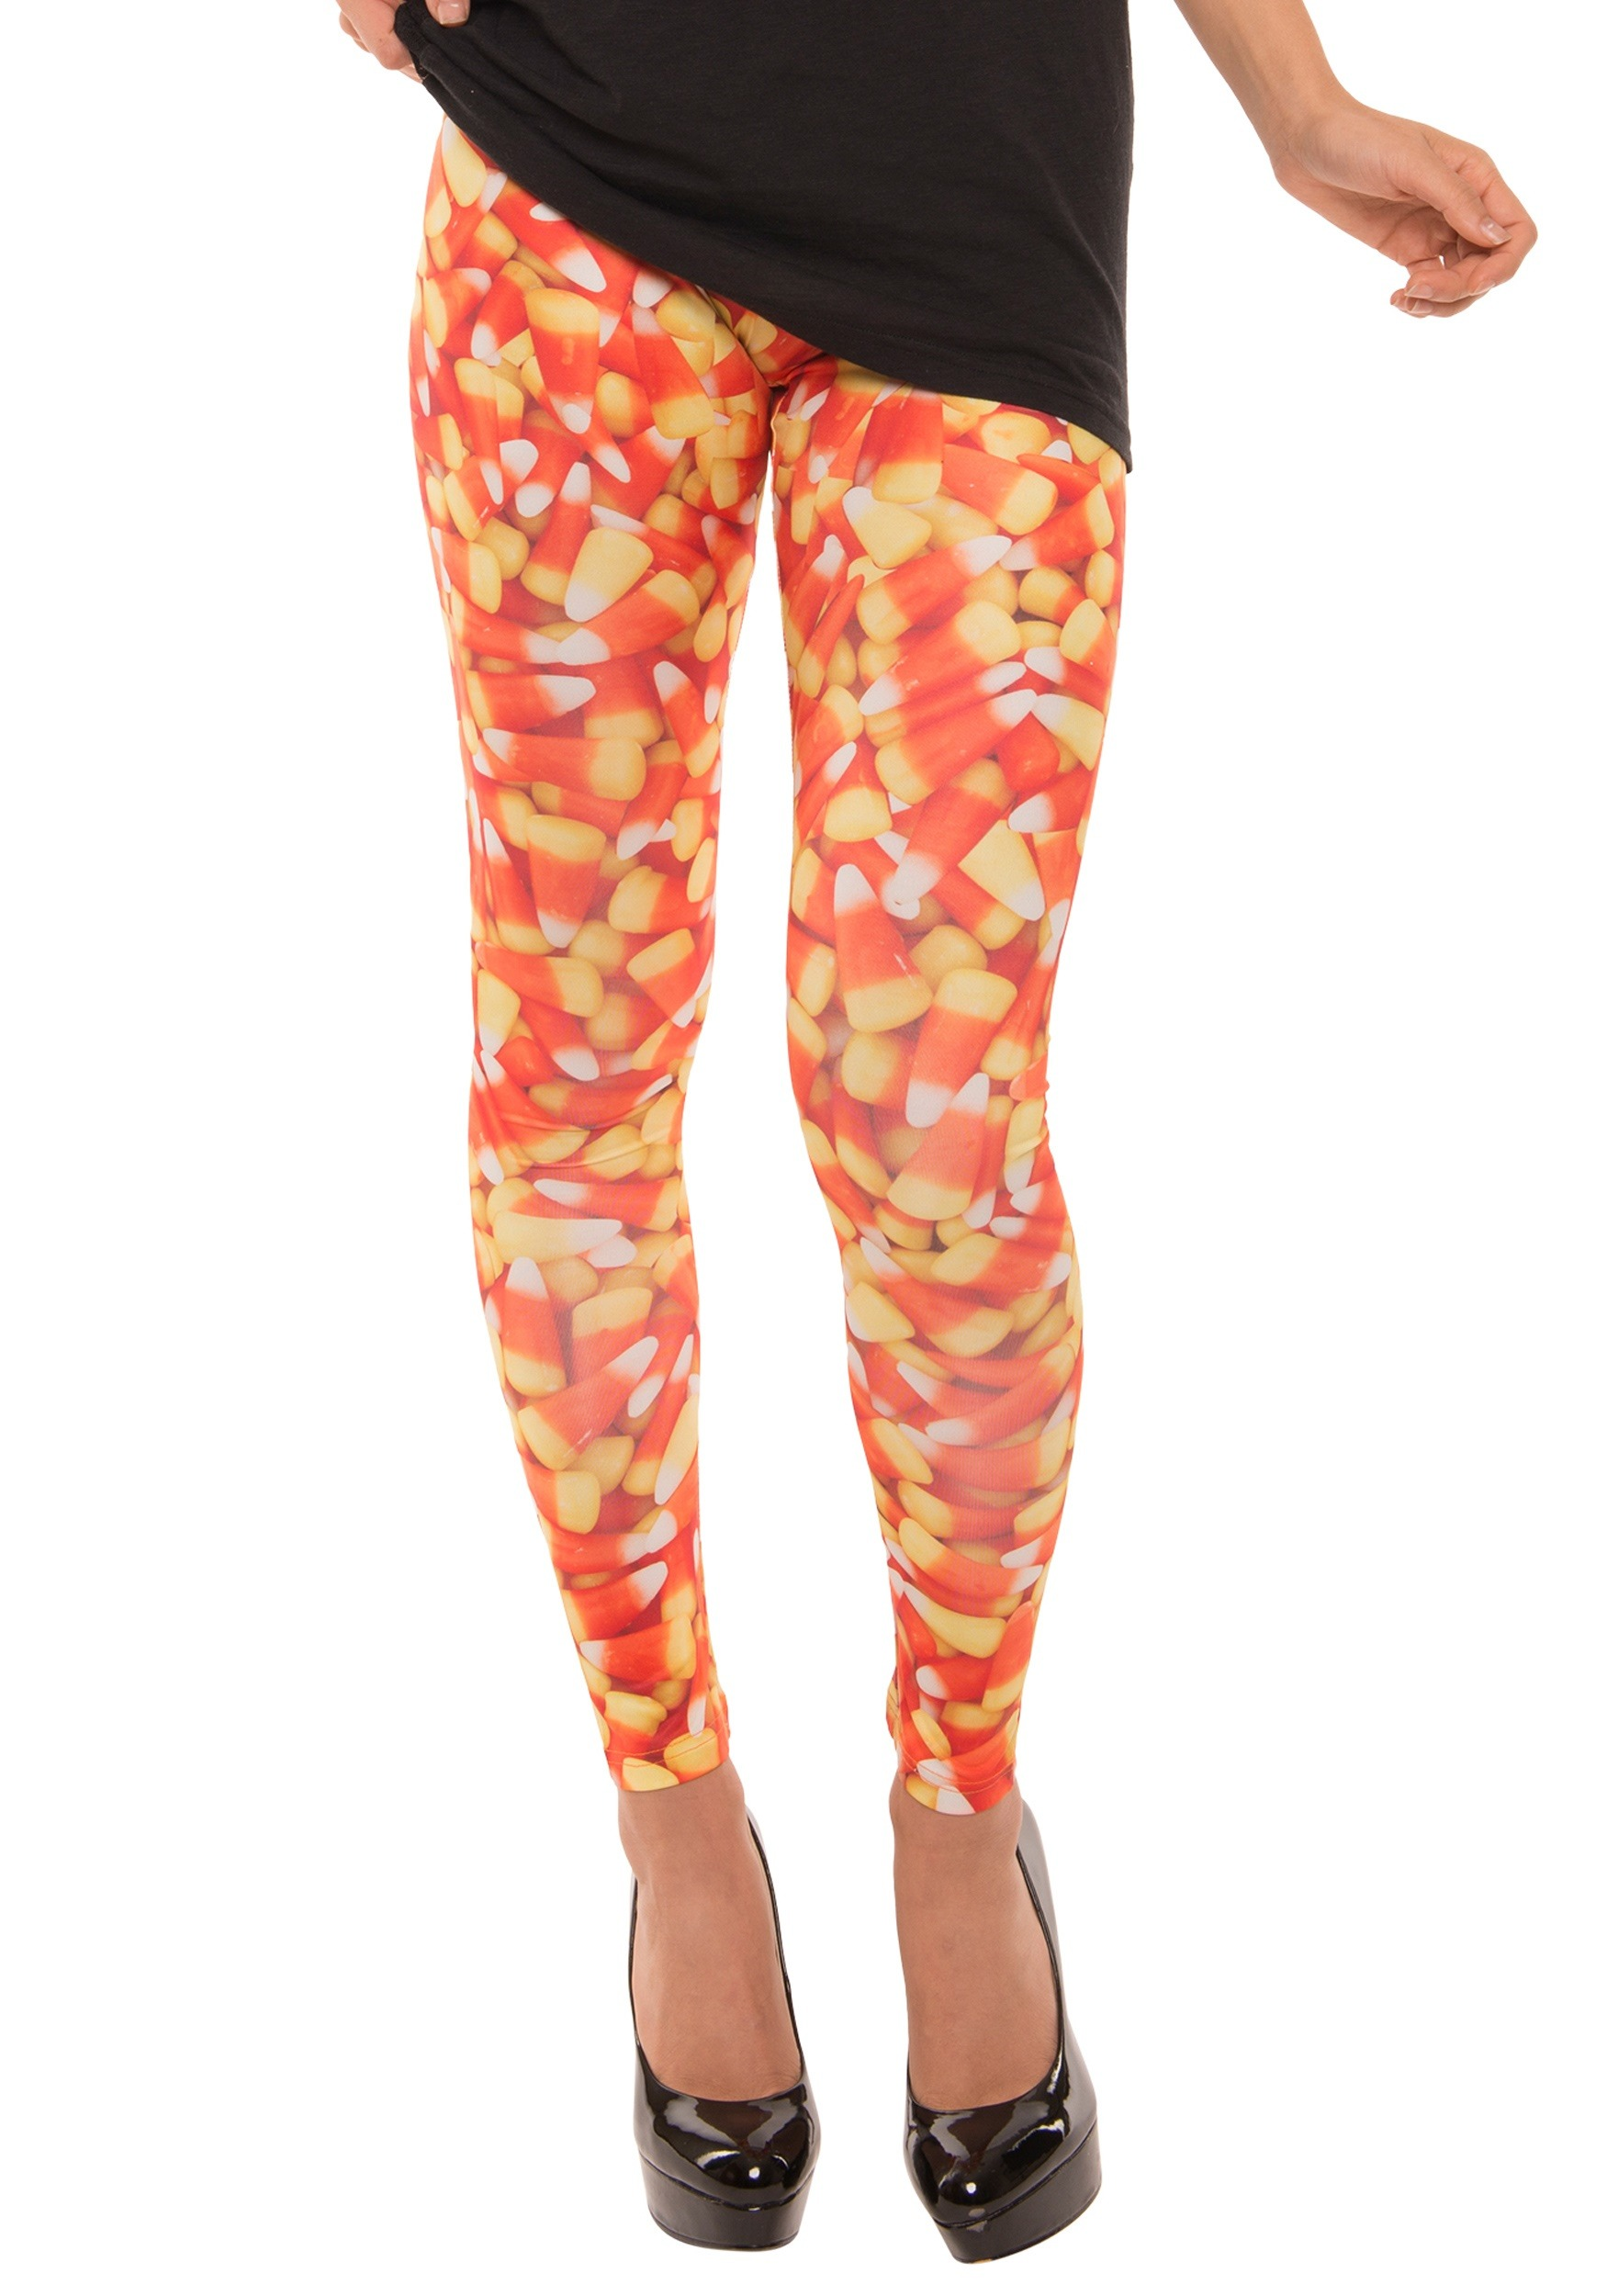 INOpets.com Anything for Pets Parents & Their Pets Candy Corn Womens Leggings